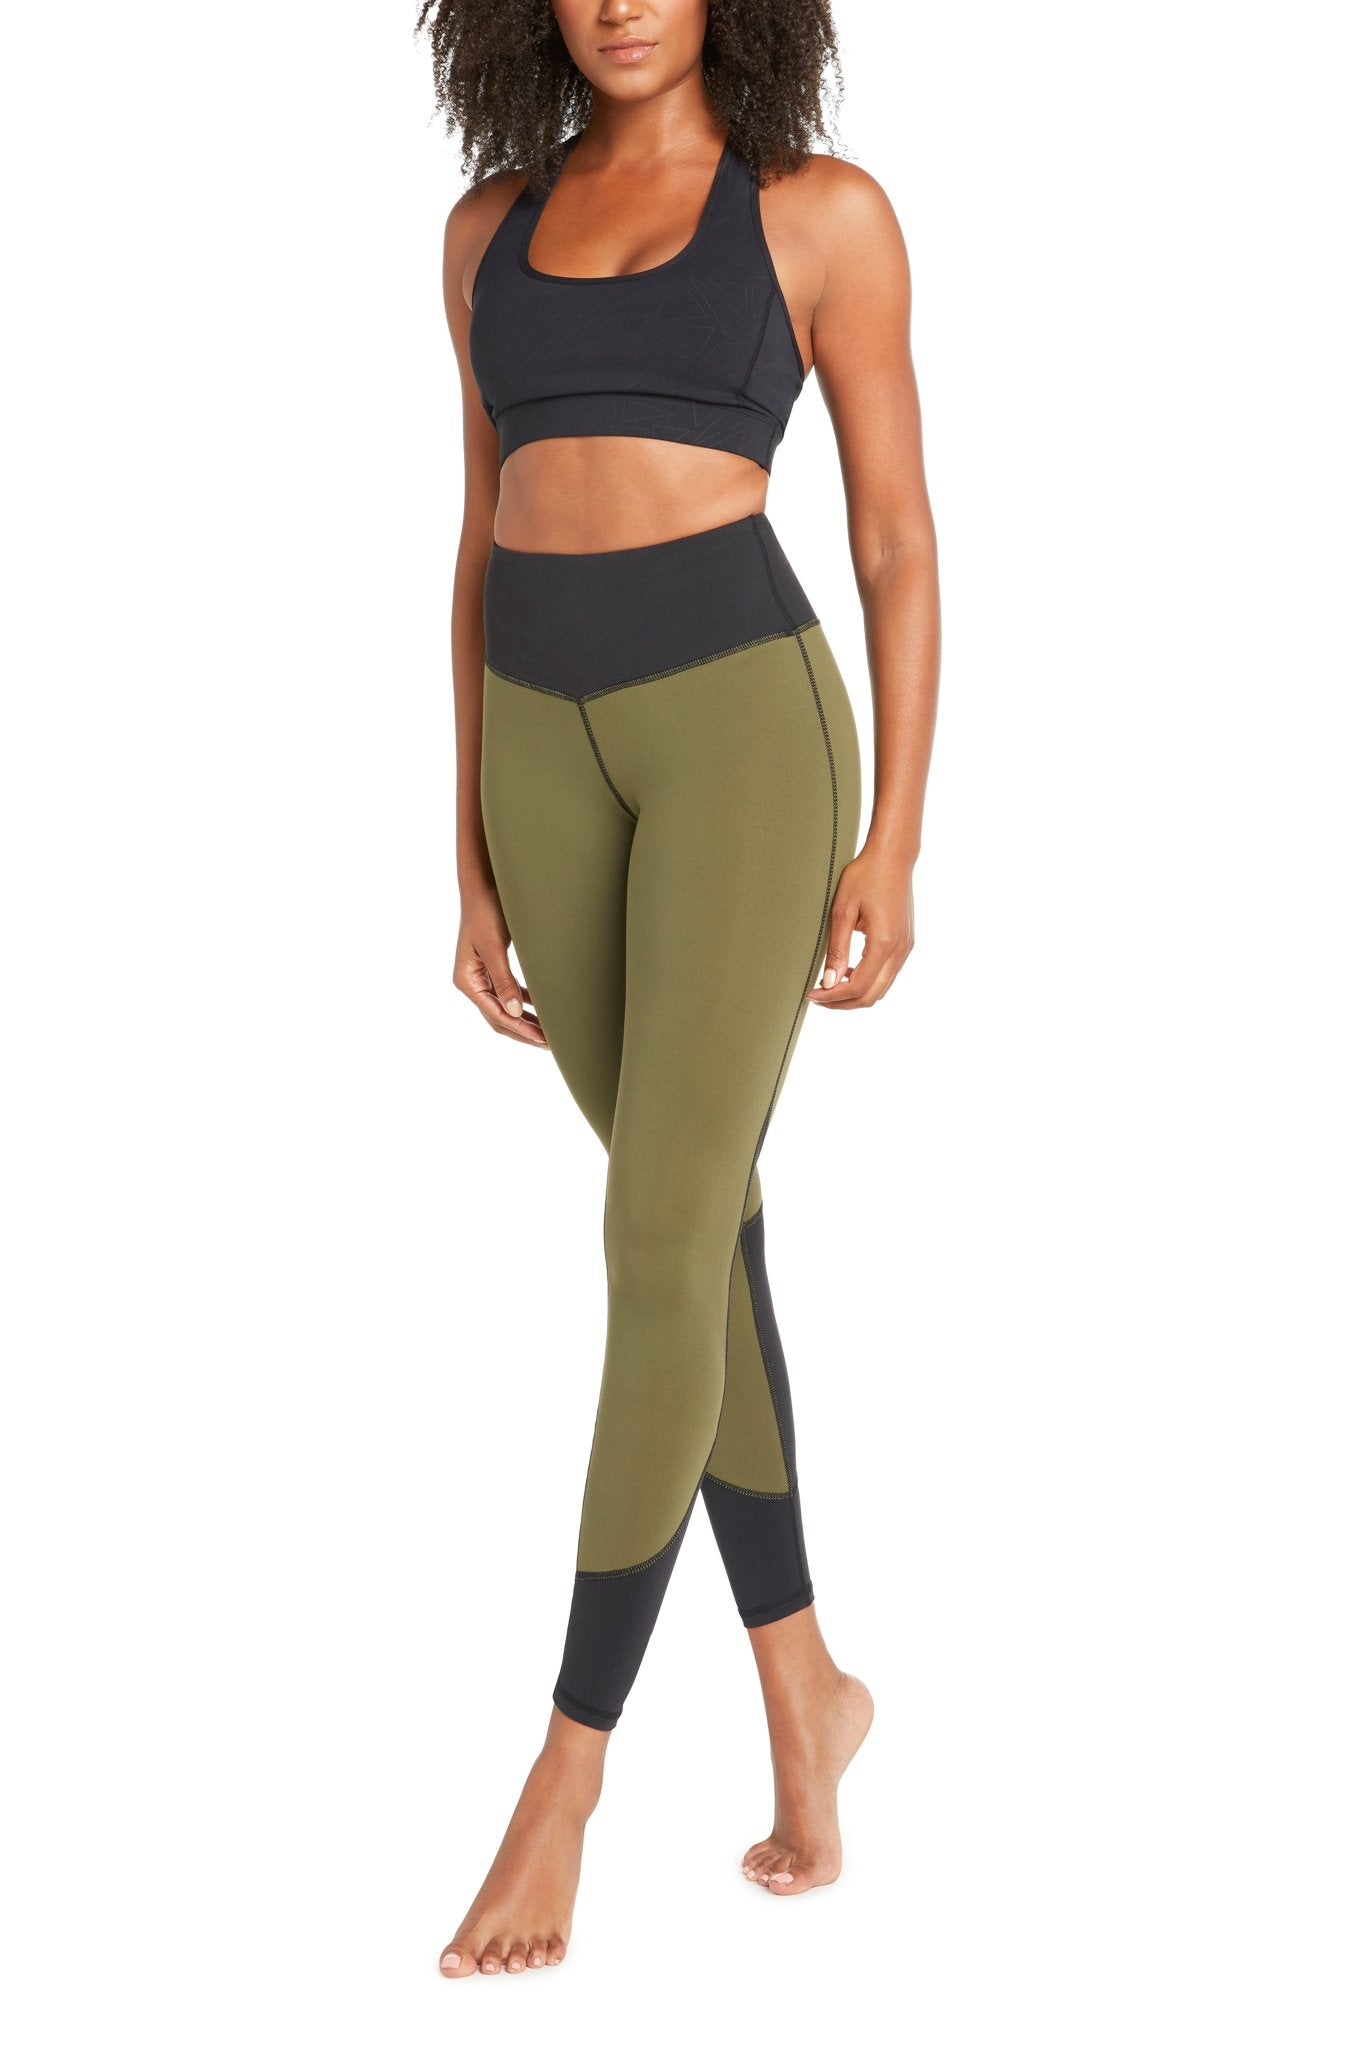 Francesca High-Waist Women's Activewear Leggings